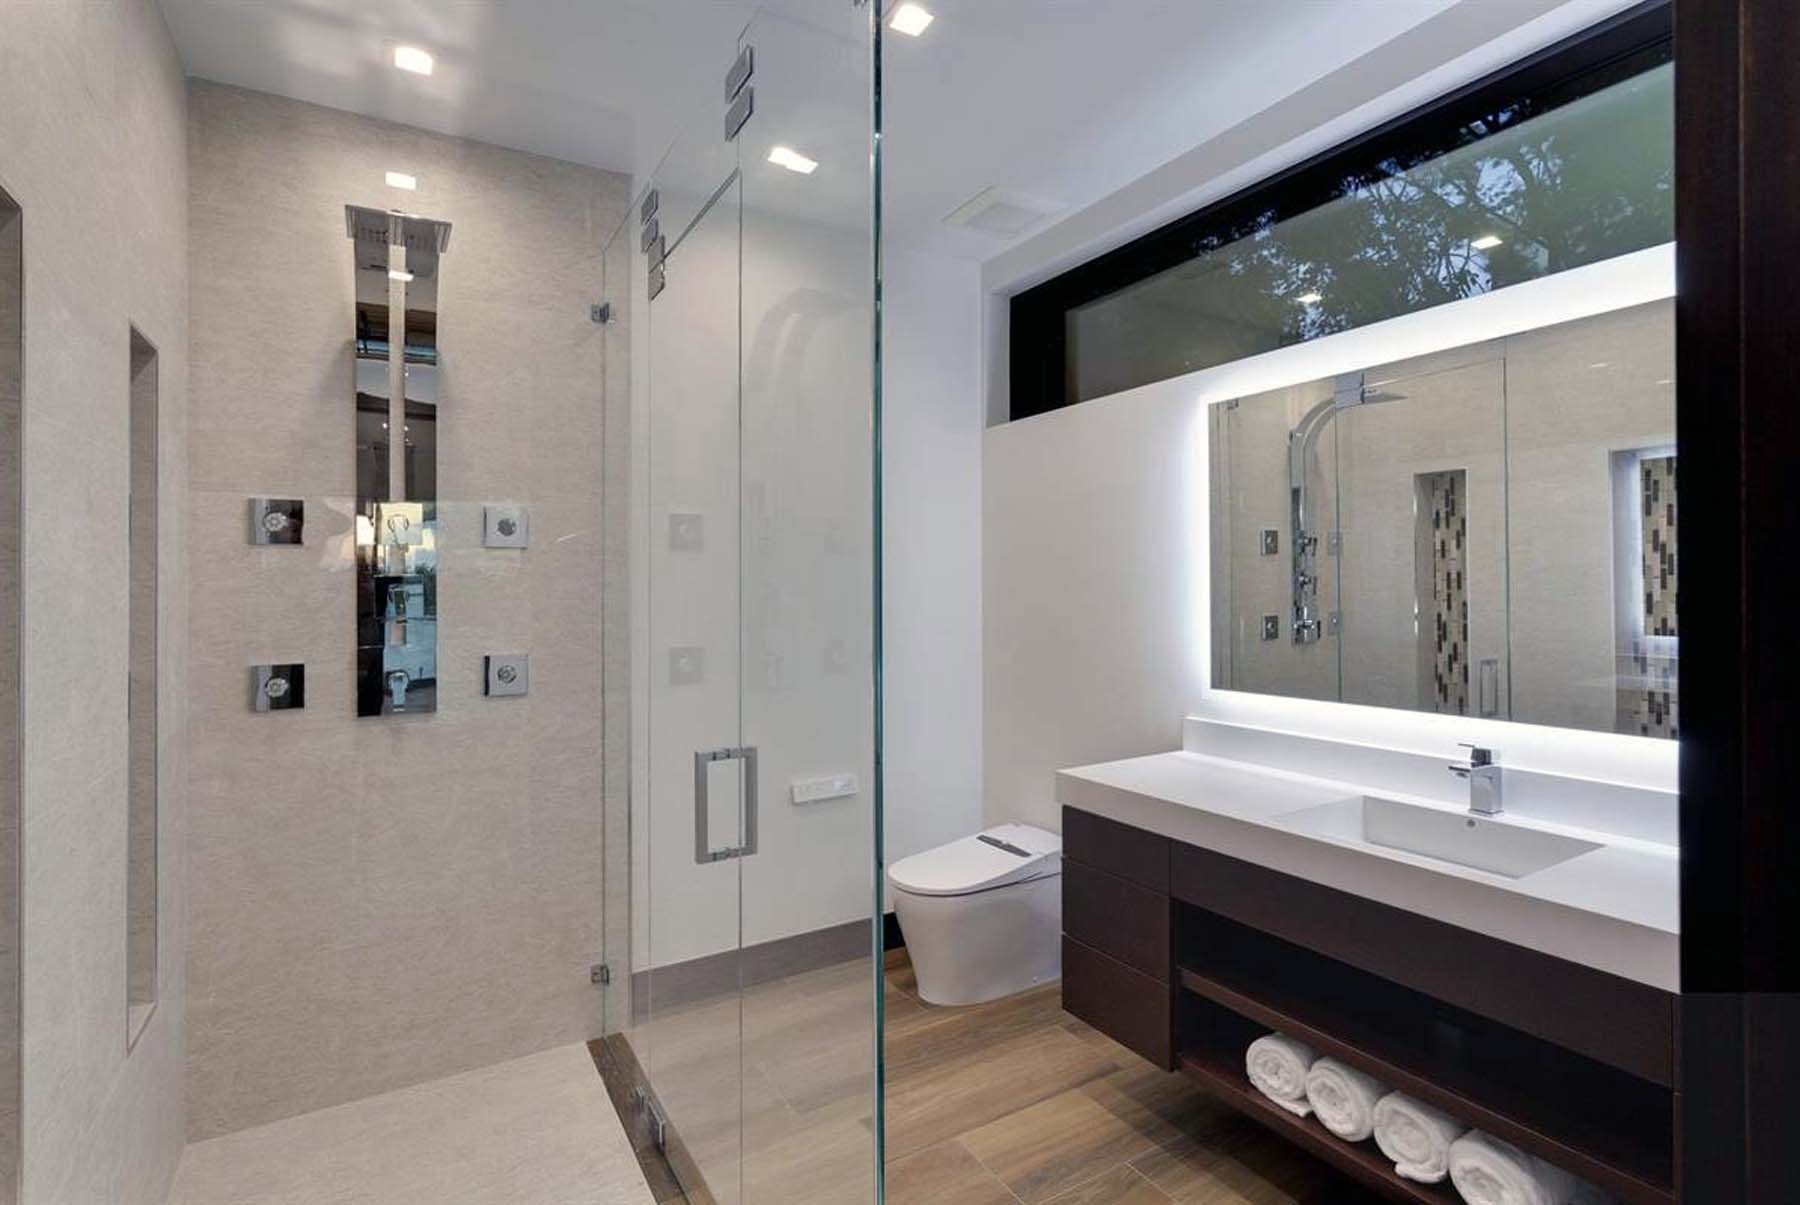 Modern bathroom with faux wood floor tiles, dark wood cabinetry and marble.